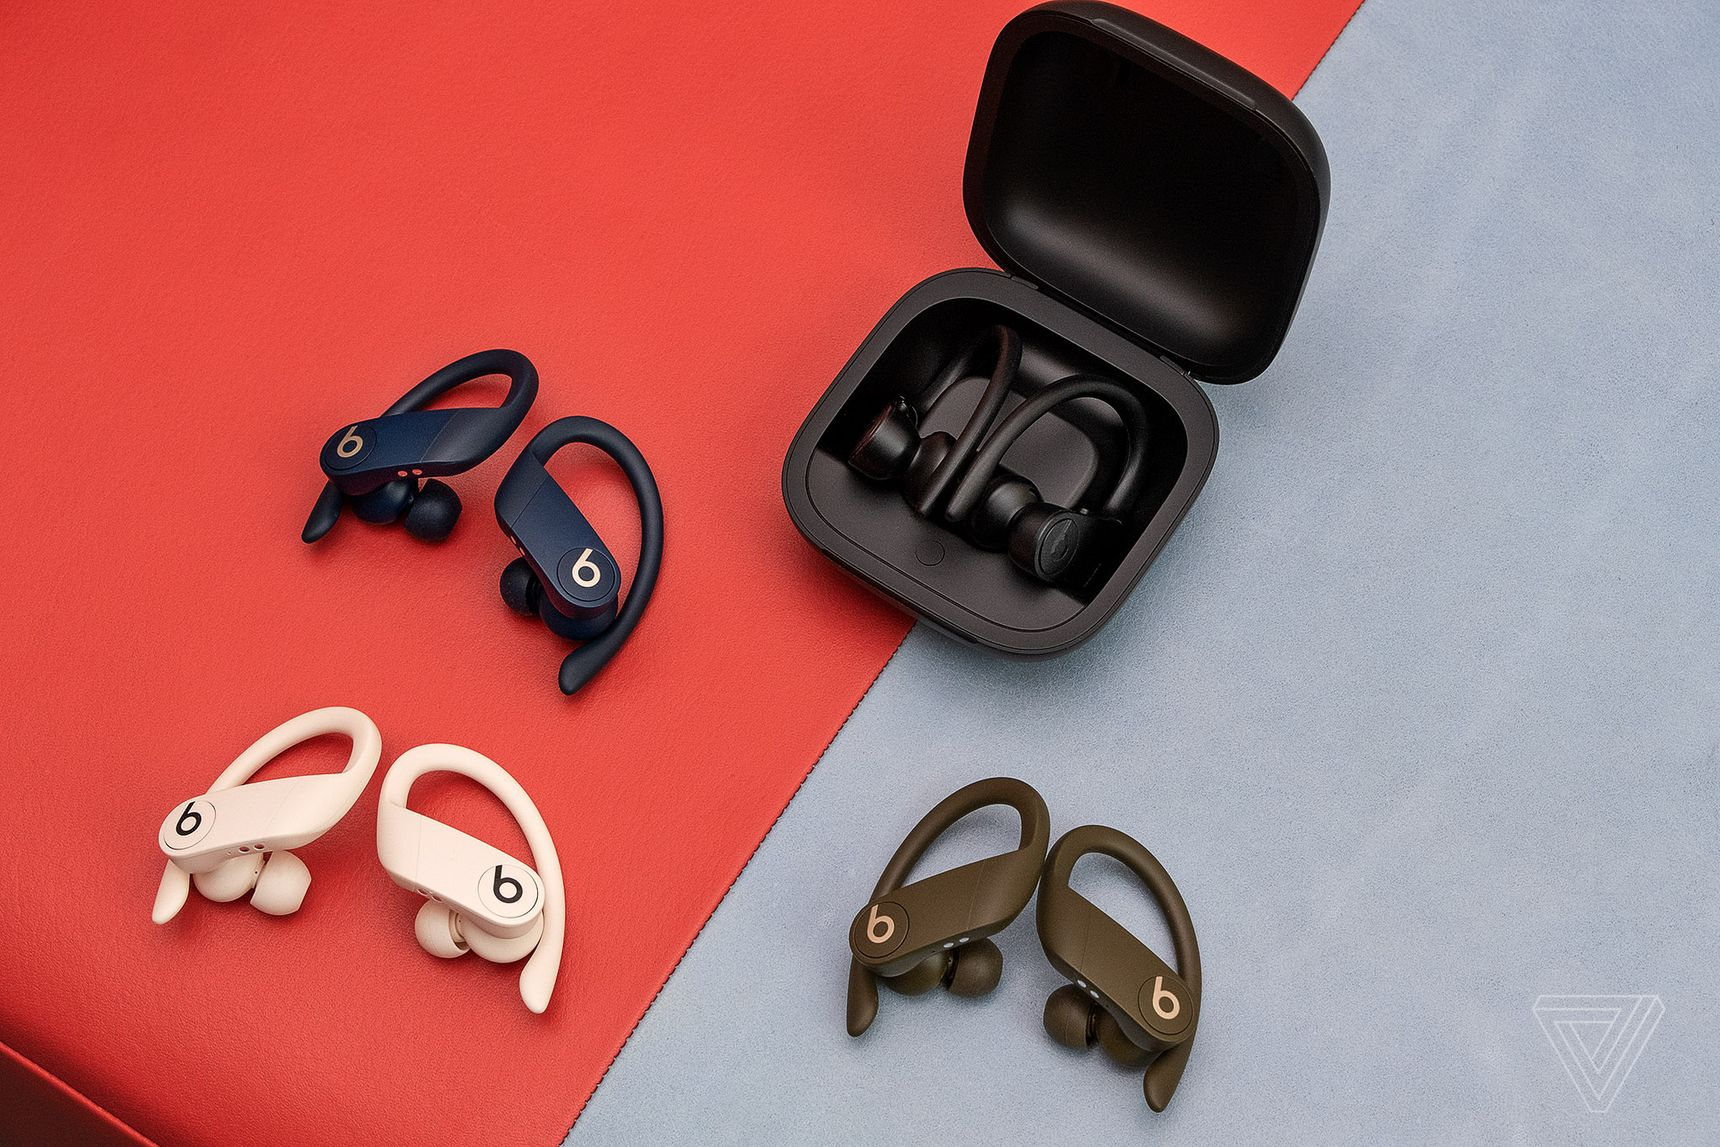 baa0e14ae29 Pre-orders for Powerbeats Pro are opening this Friday ahead of May ...